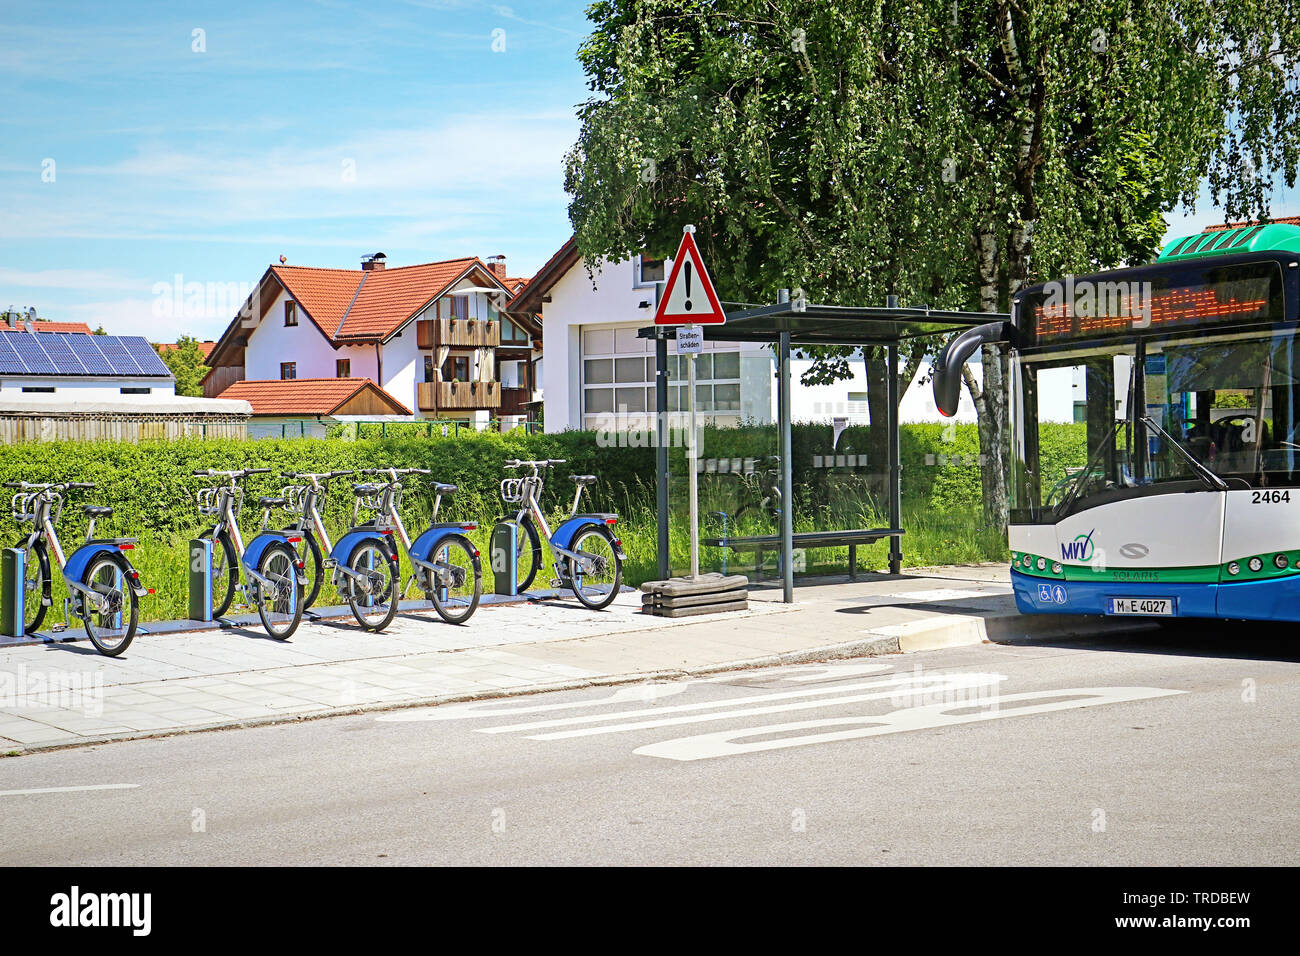 GARCHING, GERMANY - electric bikes ready to rent conveniently lined up on the sidewalk near the bus stop. Stock Photo